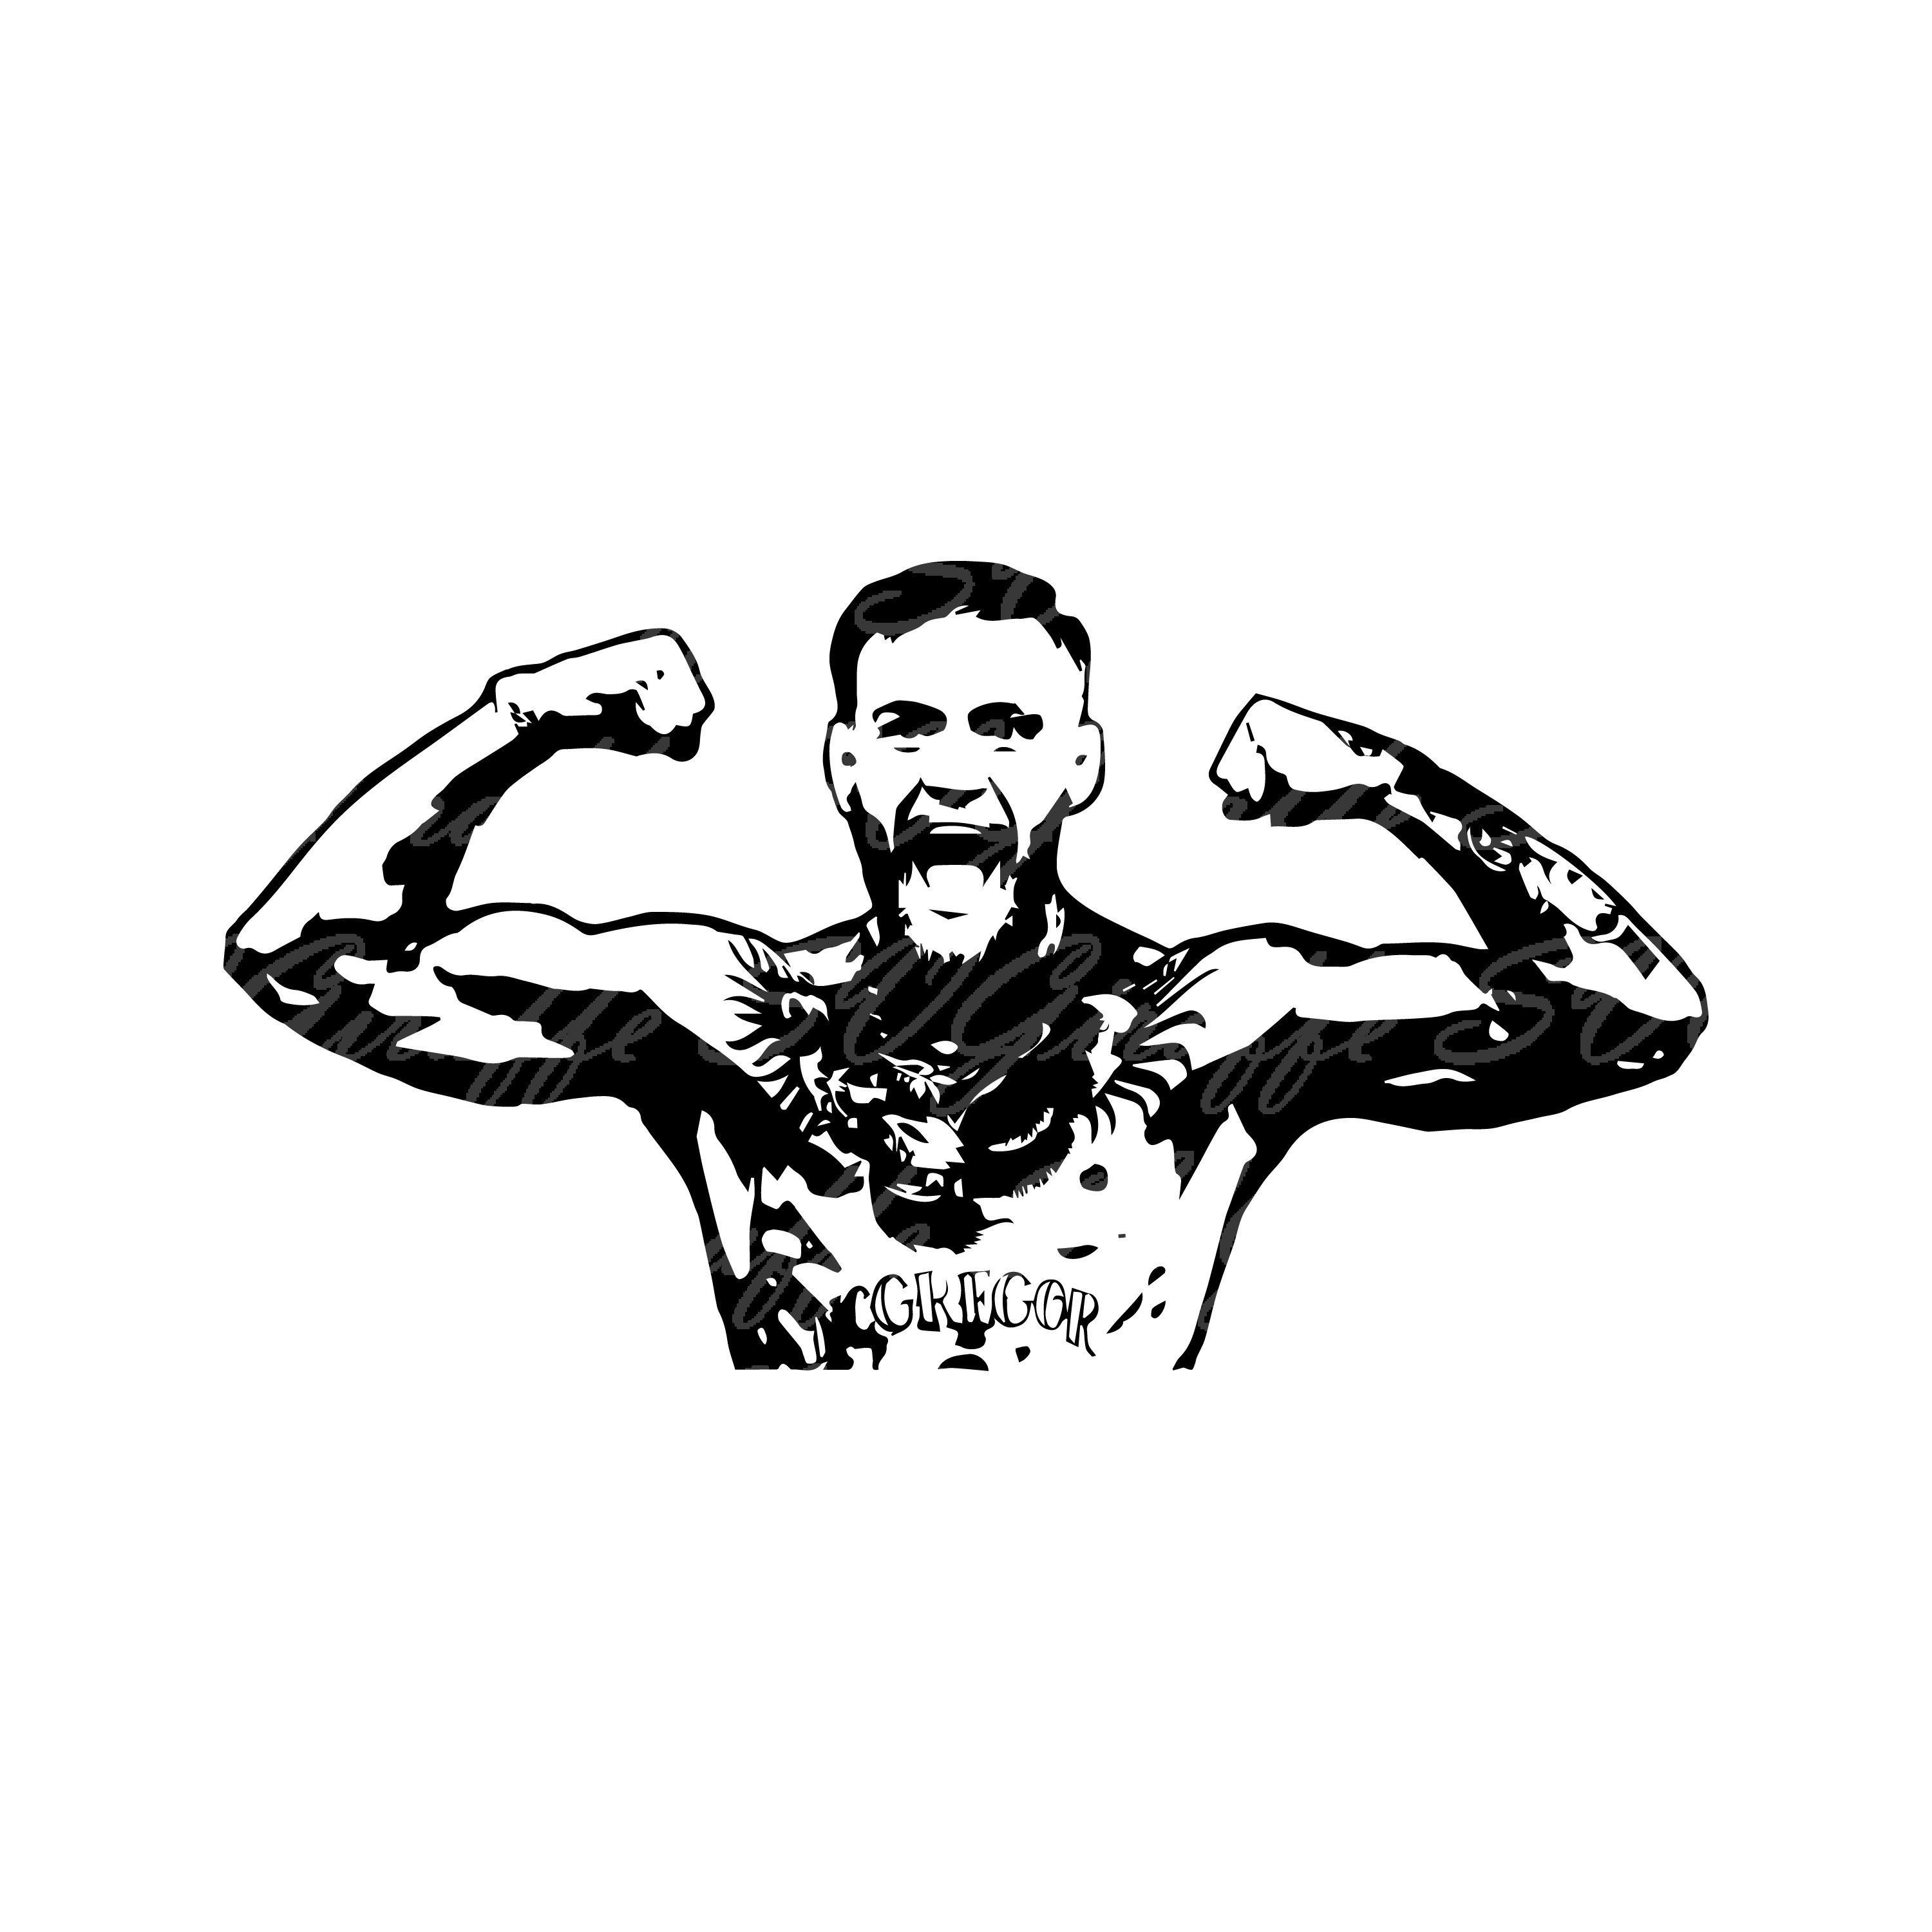 Conor Mcgregor Svg Jpg Png Dxf Pdf Files Ufc Svg Conor Etsy In 2020 Mcgregor Wallpapers Conor Mcgregor Conor Mcgregor Wallpaper